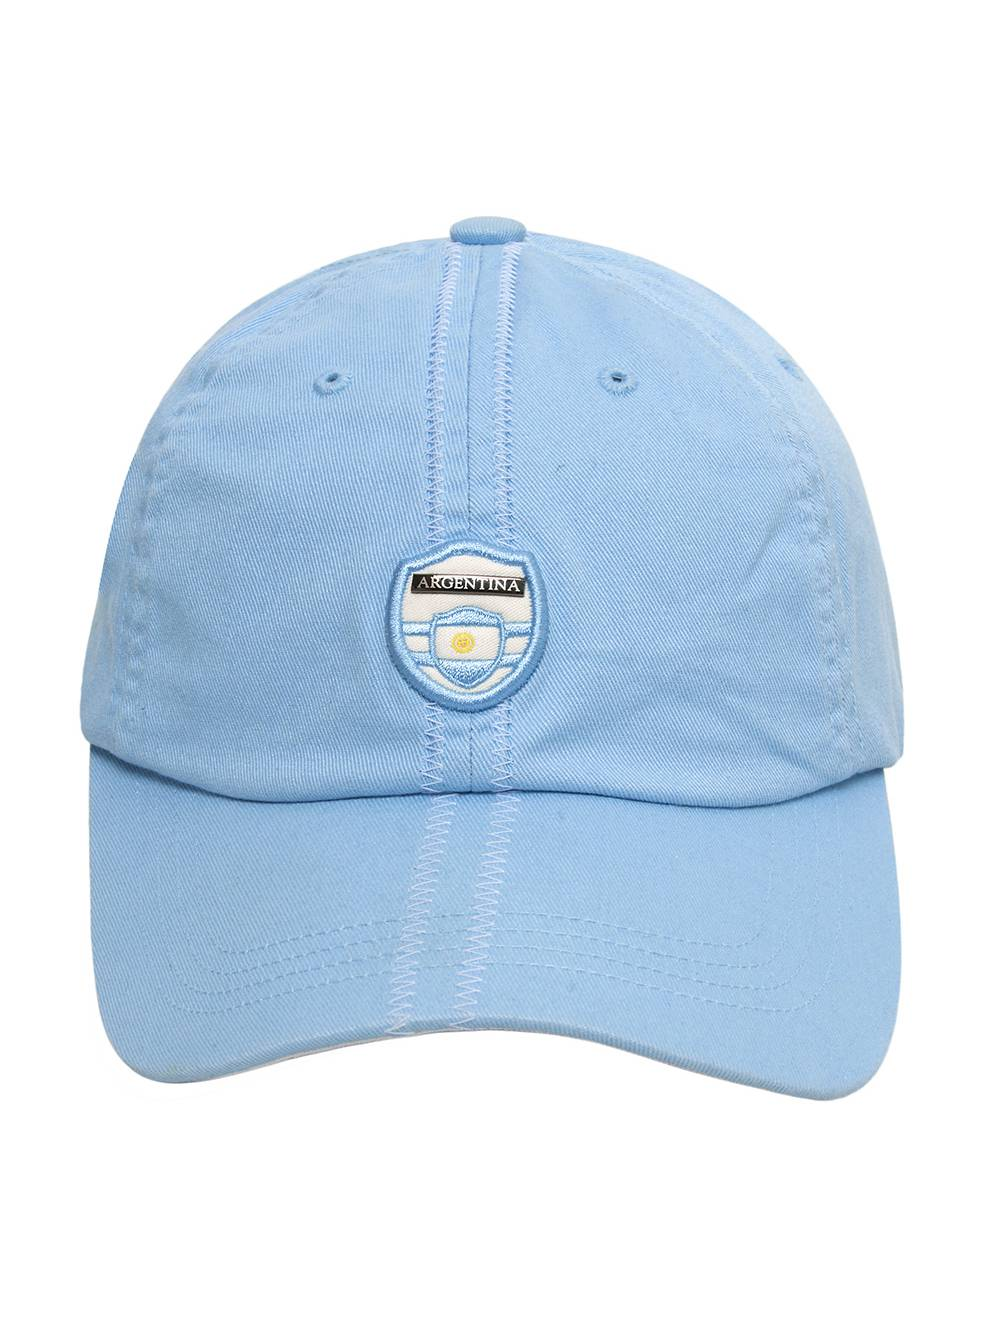 World Cup Argentina Vintage Adjustable Buckle Soccer Cap 918150beab4